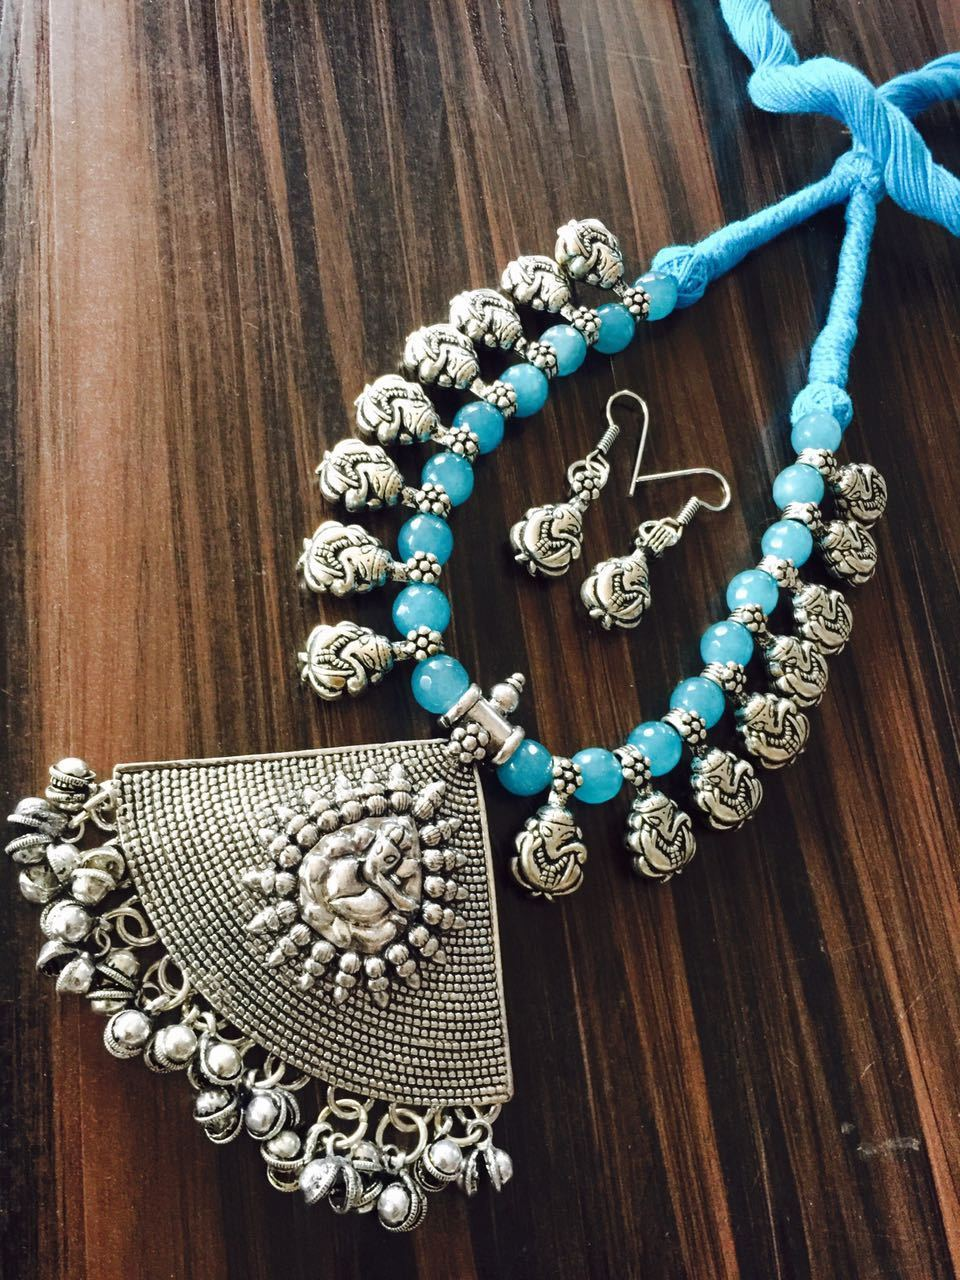 Sky Blue Glass Beaded Necklace with Hook Earring and Ganapathi Design Pendant with Ghungaroo Droppings